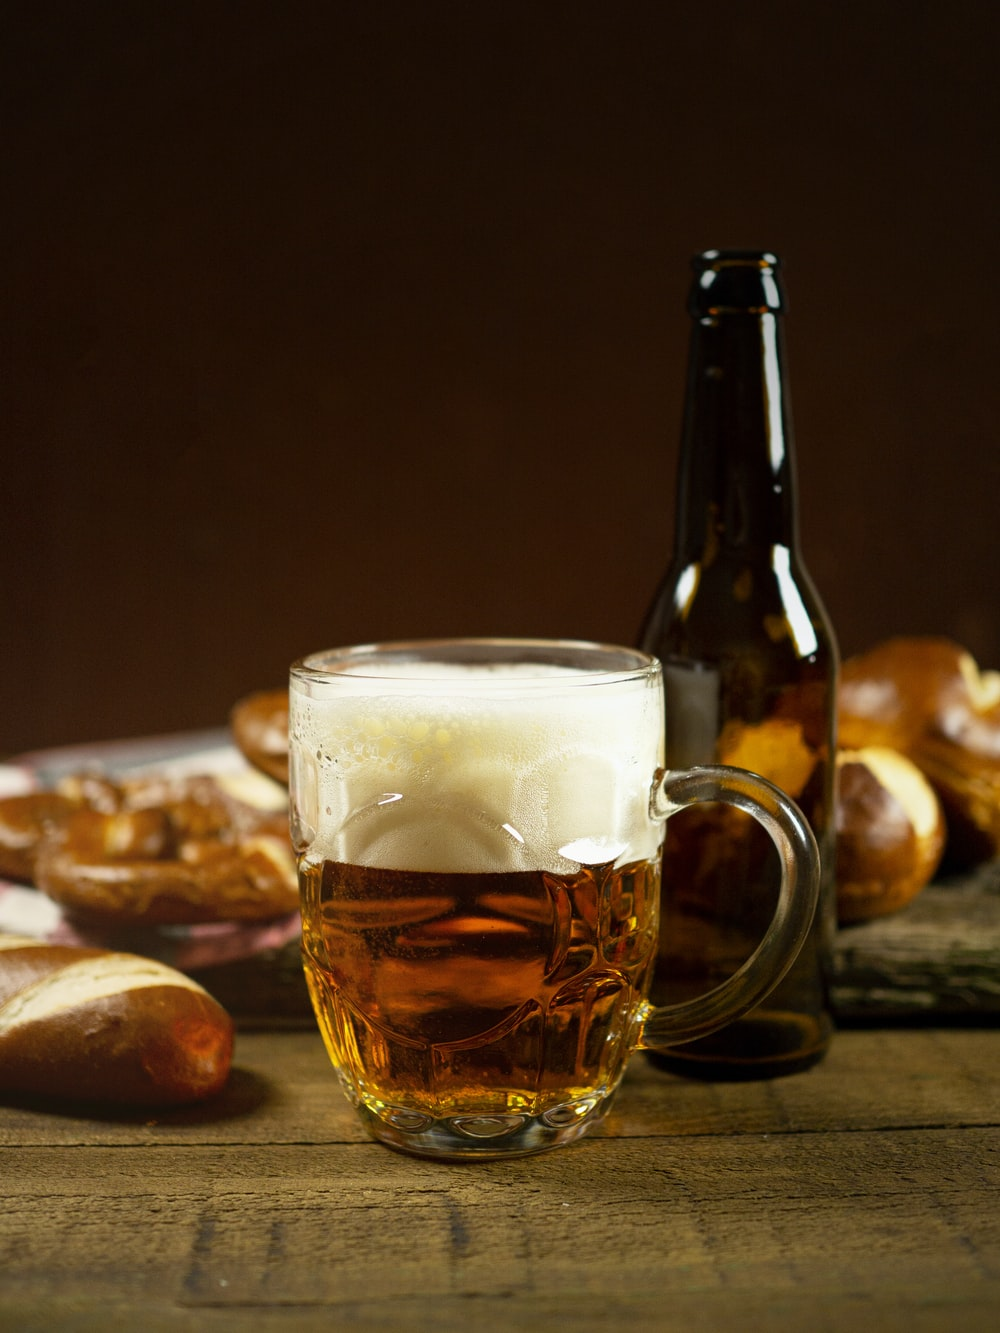 clear glass mug with beer on brown wooden table